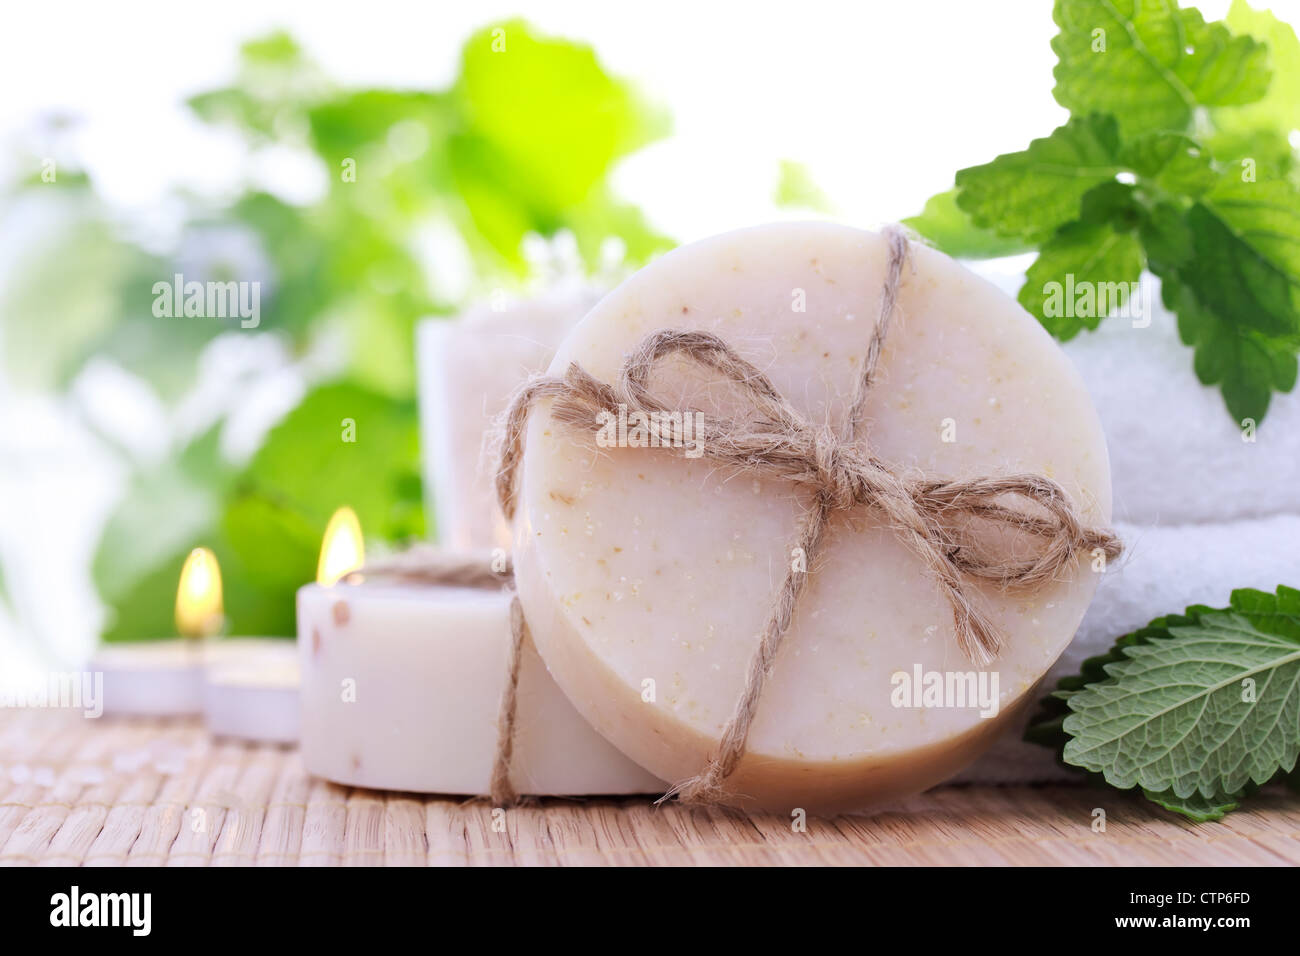 Bars of soap with fresh mint leaves and towels - Stock Image